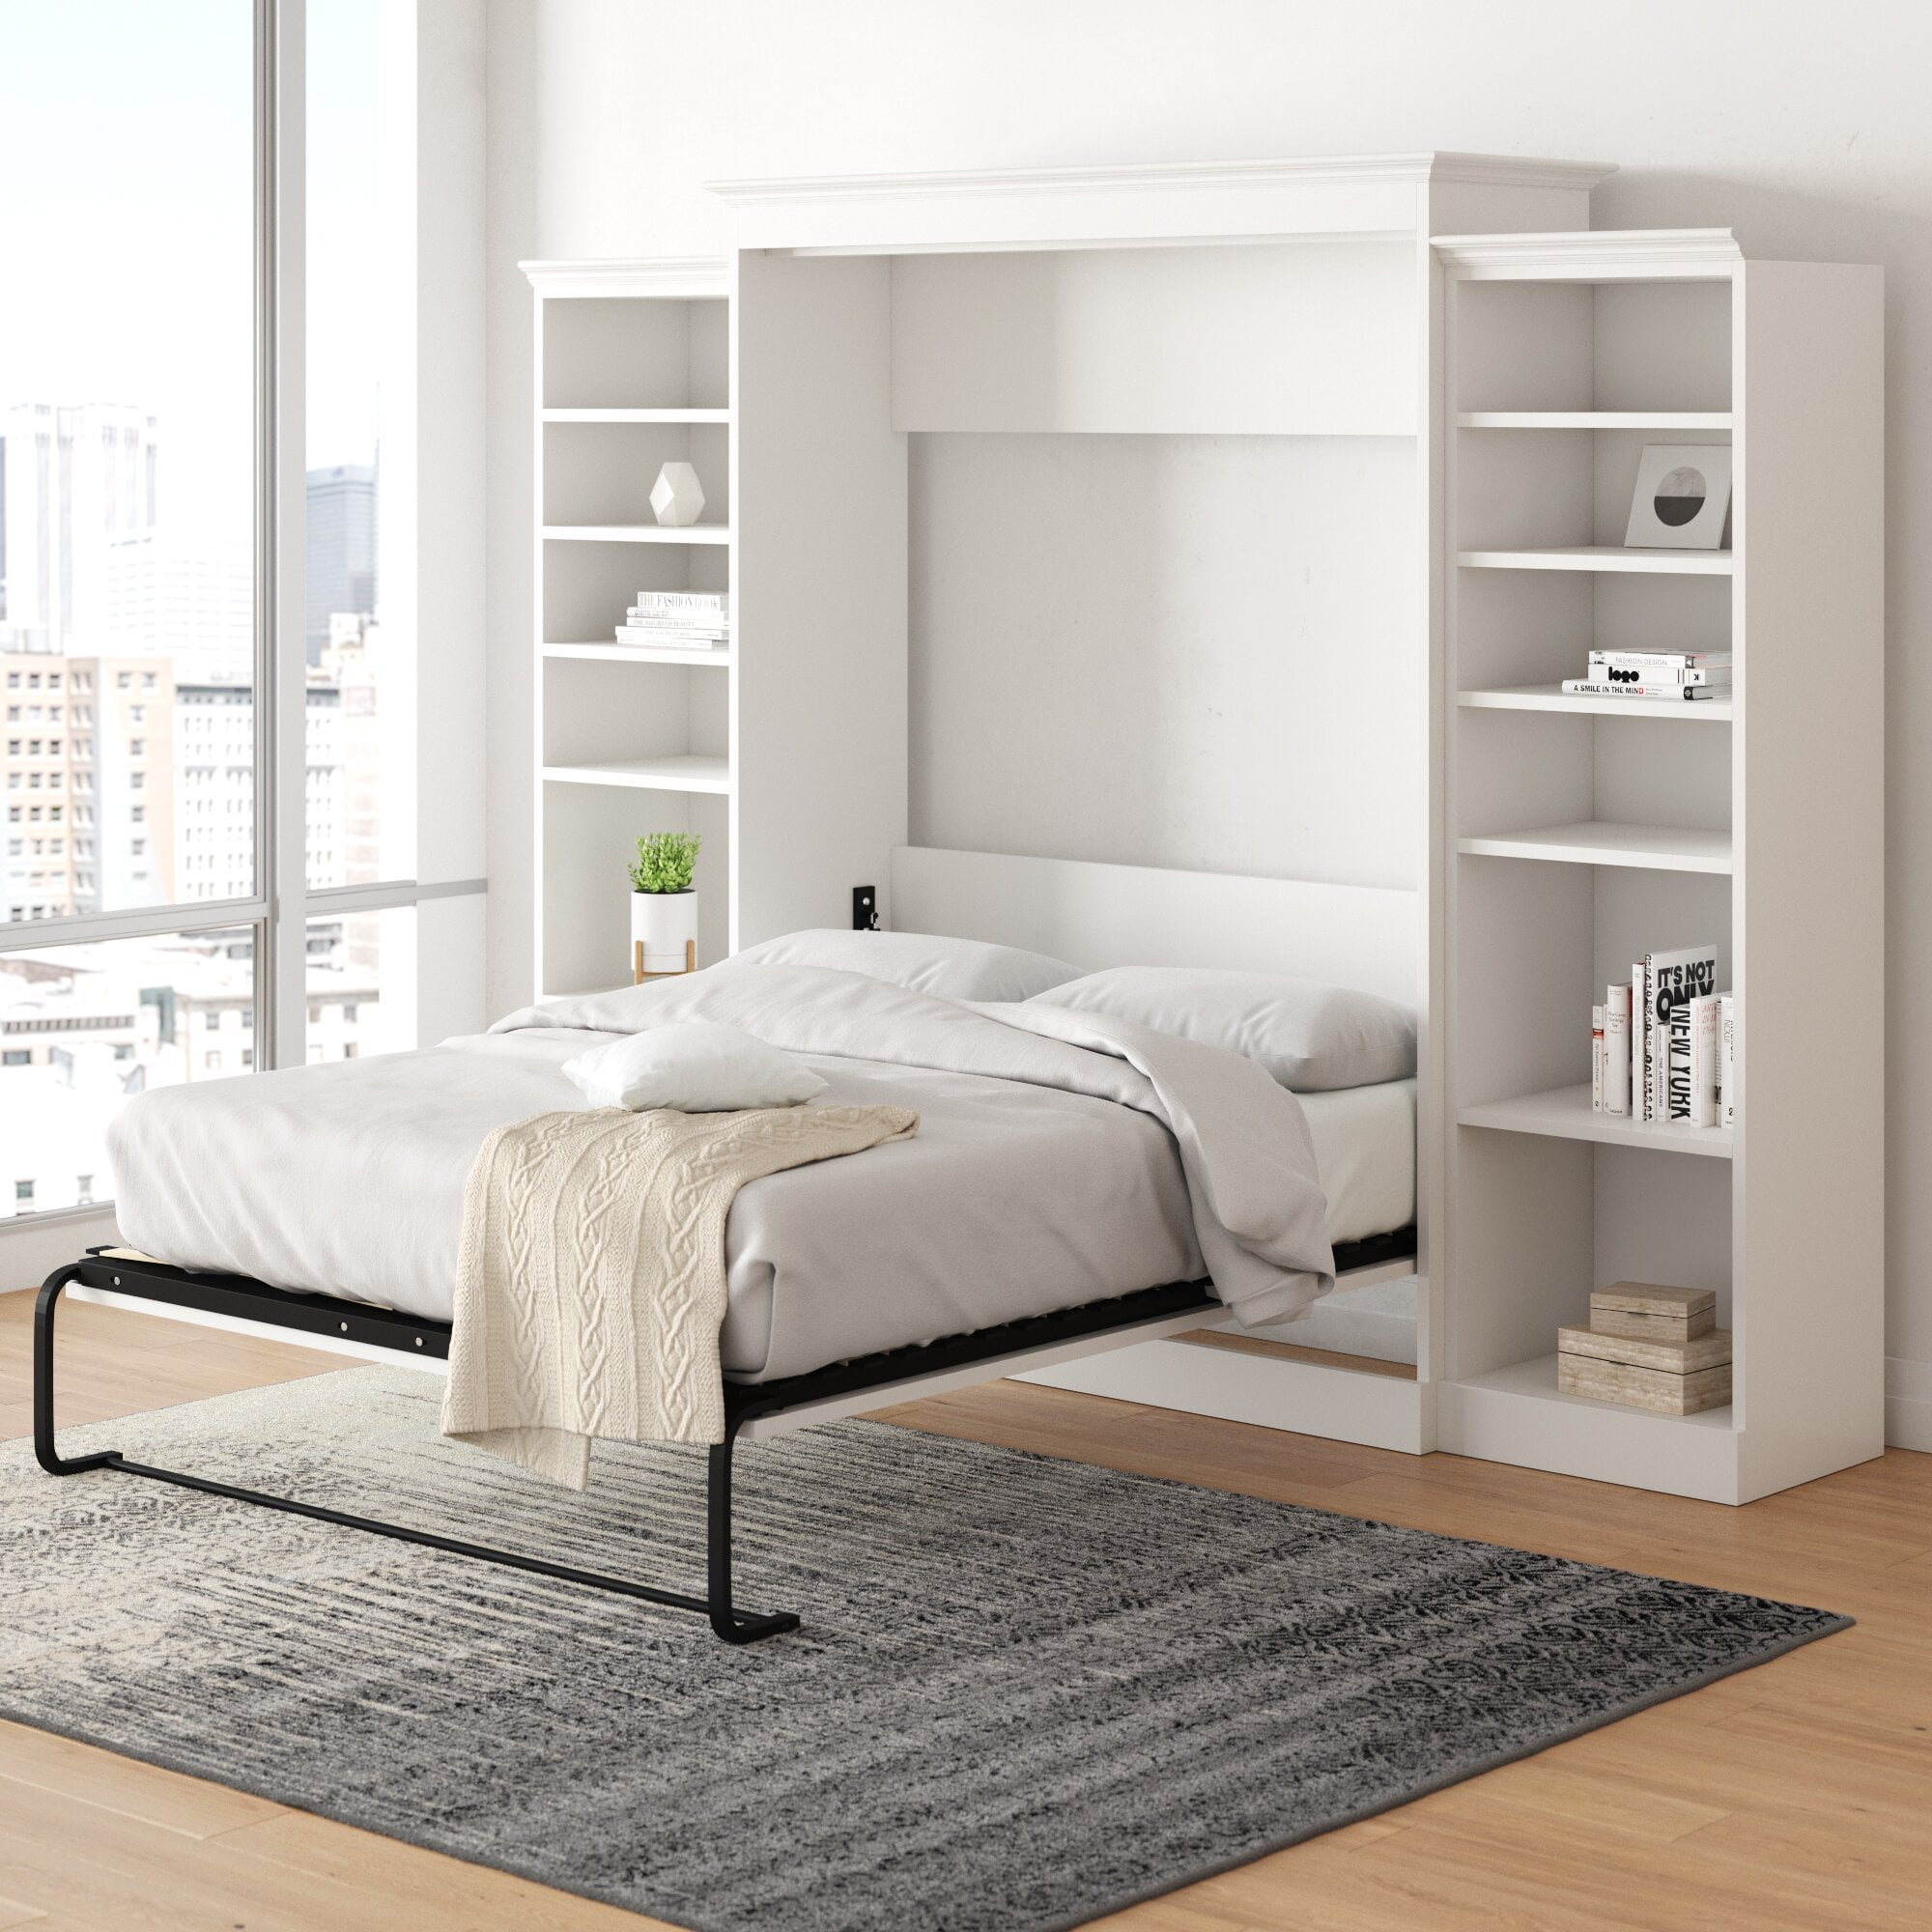 The Best Beds For Small Spaces And Rooms Popsugar Home